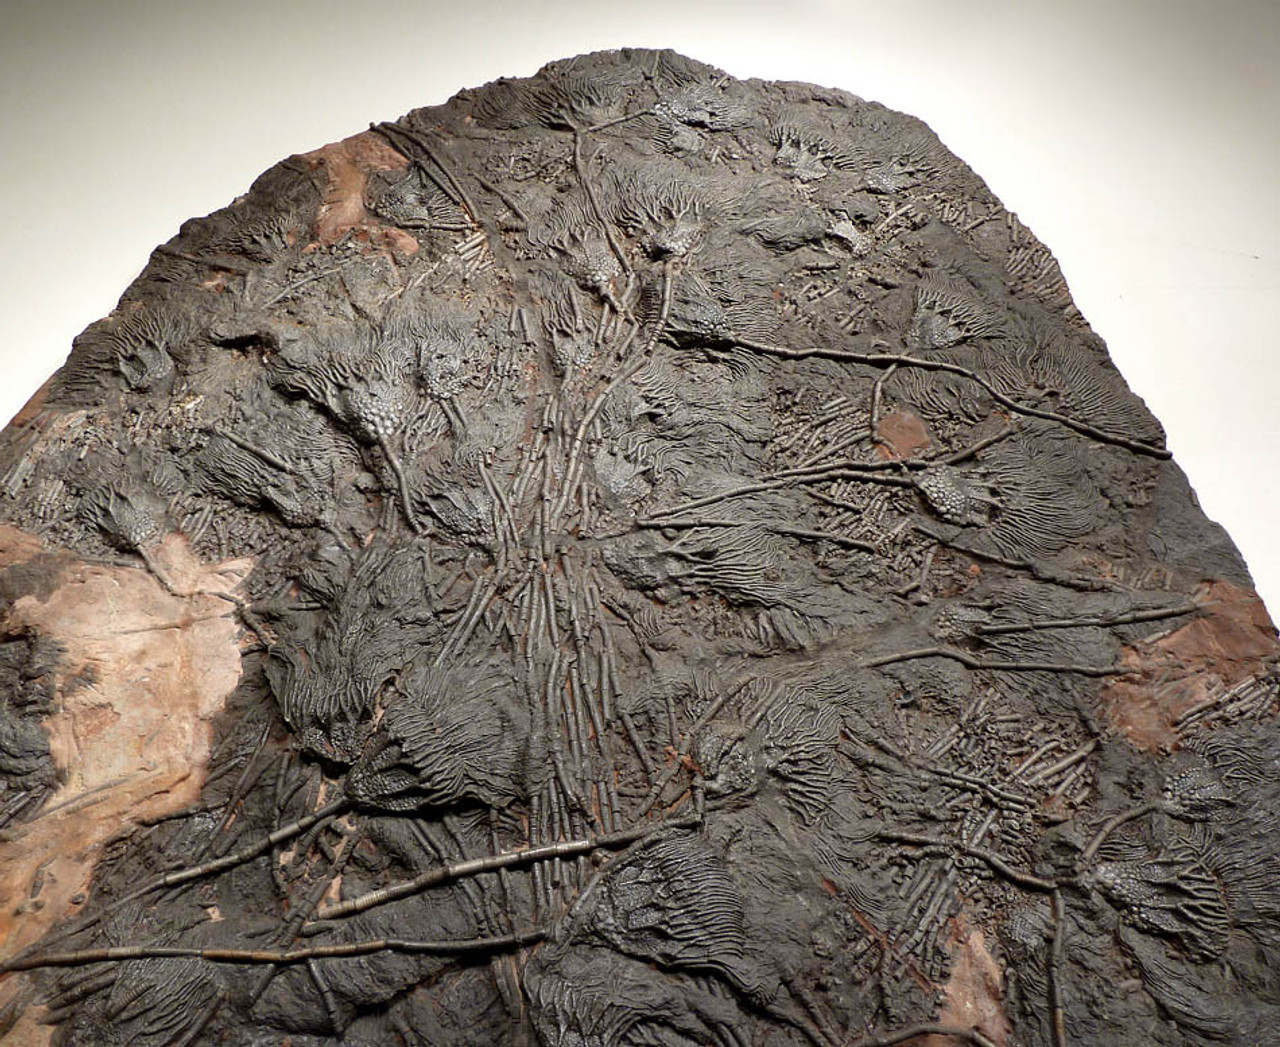 LARGE INTERIOR DESIGN SHOWPIECE FOSSIL OF PREHISTORIC SEA LILY CRINOIDS FROM 420 MILLION YEARS AGO *CRI031